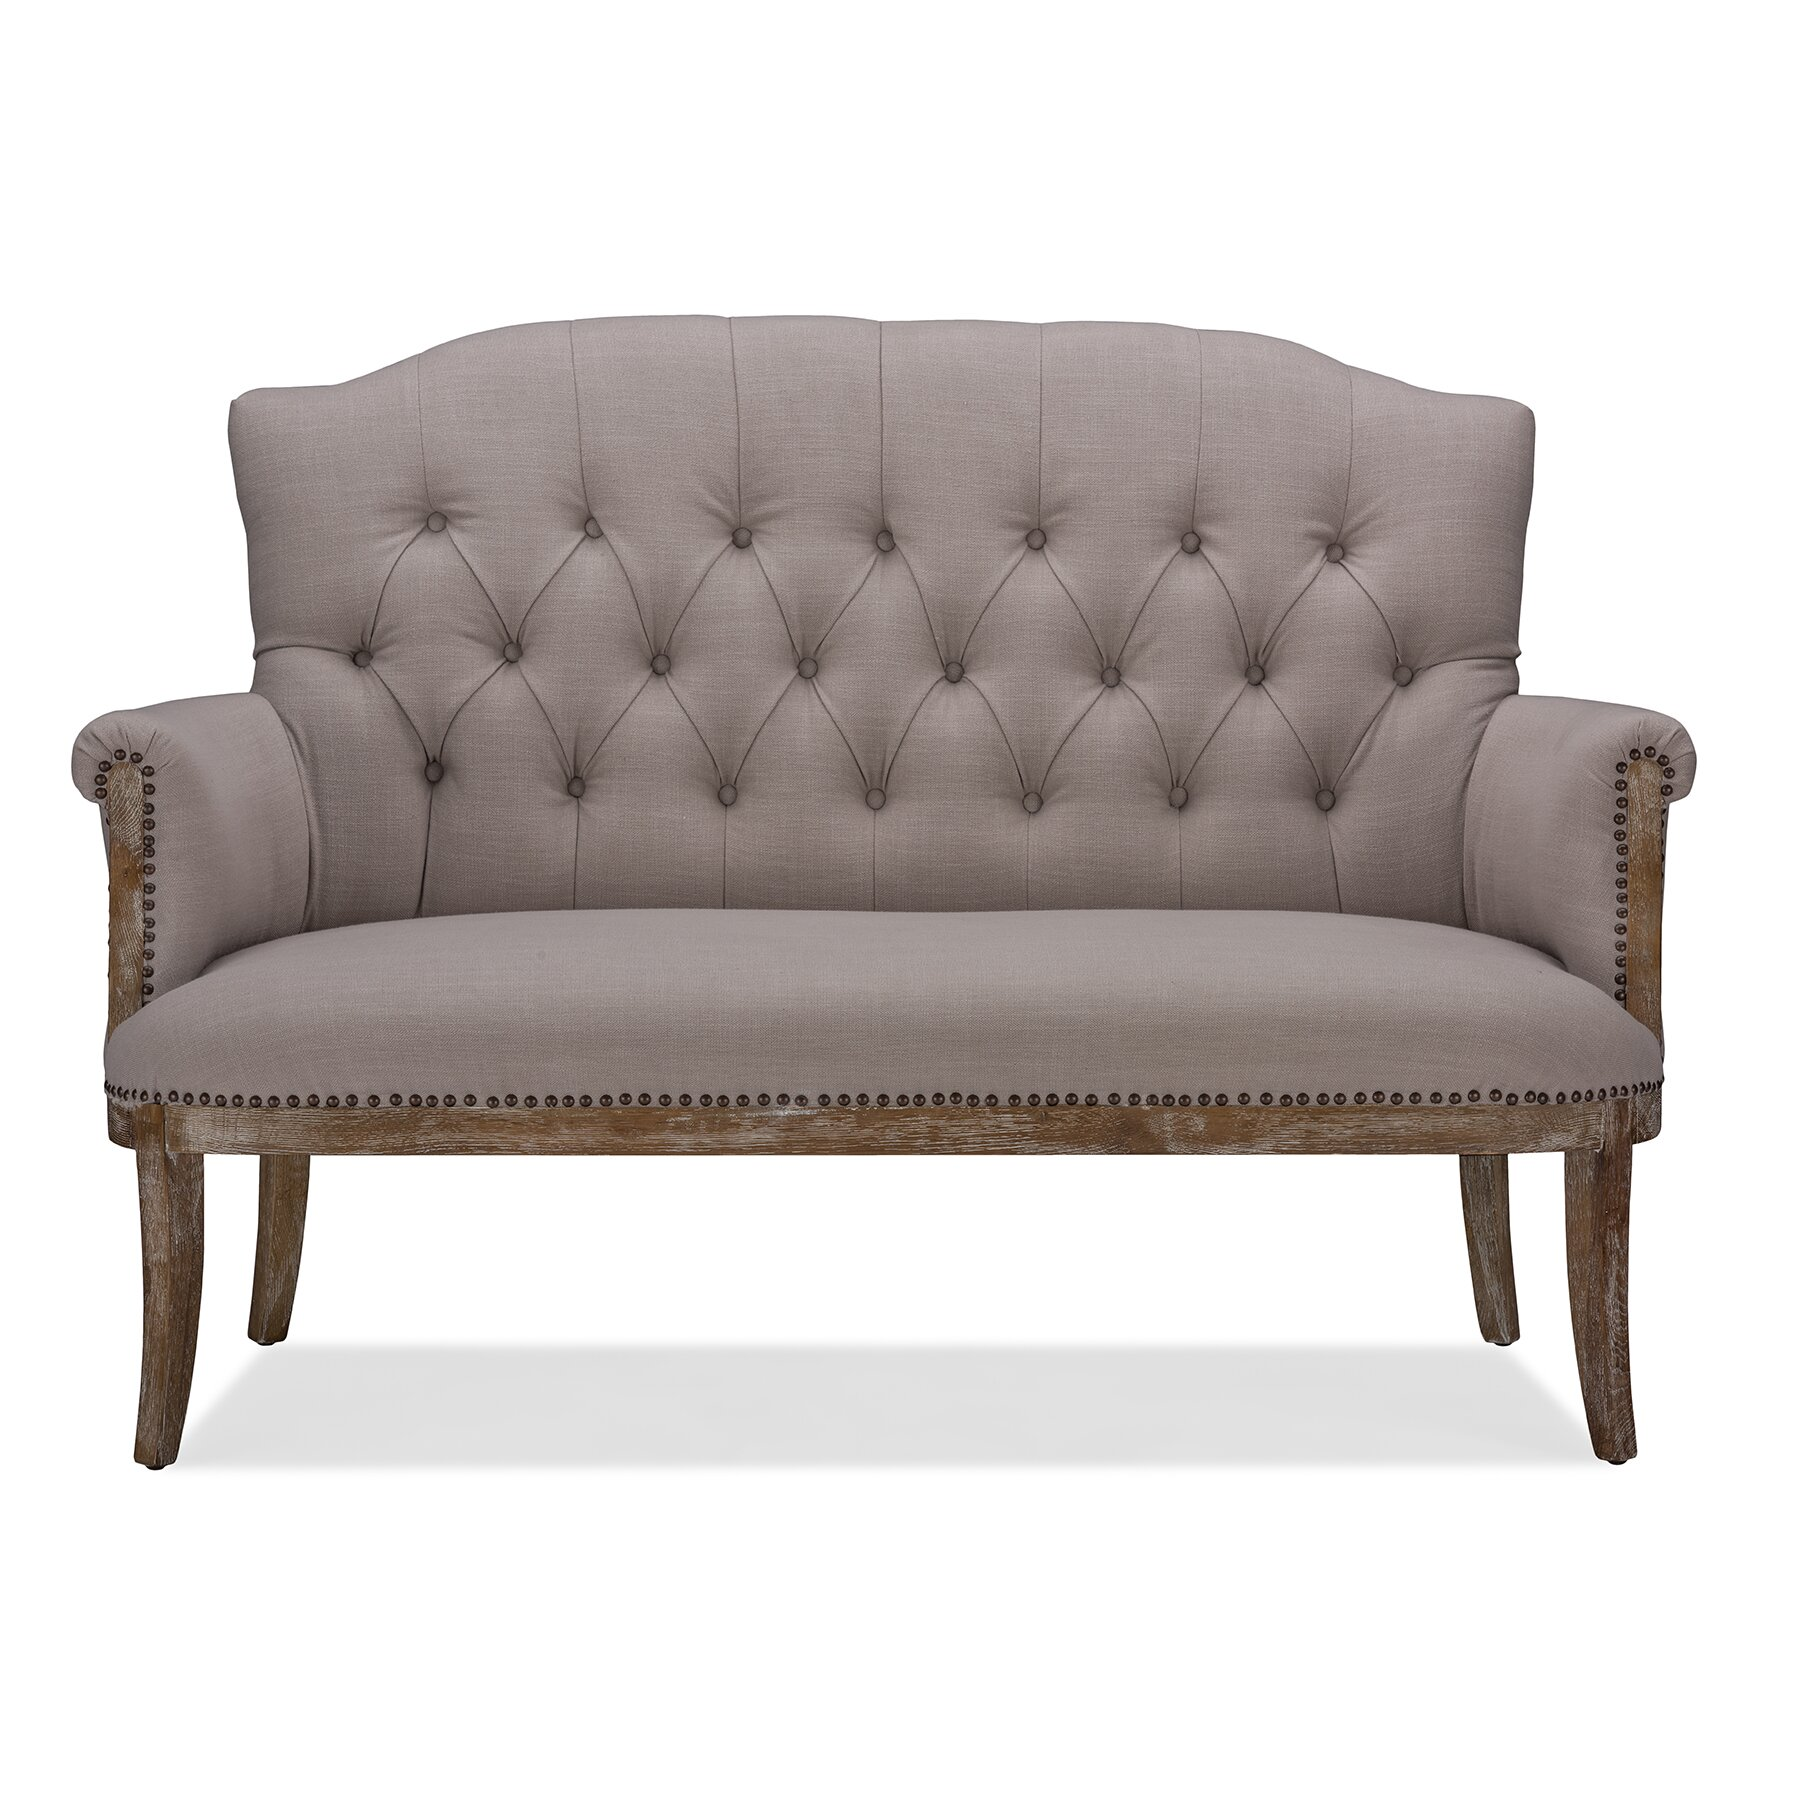 Wholesale interiors bria tufted bench reviews wayfair Retro loveseats